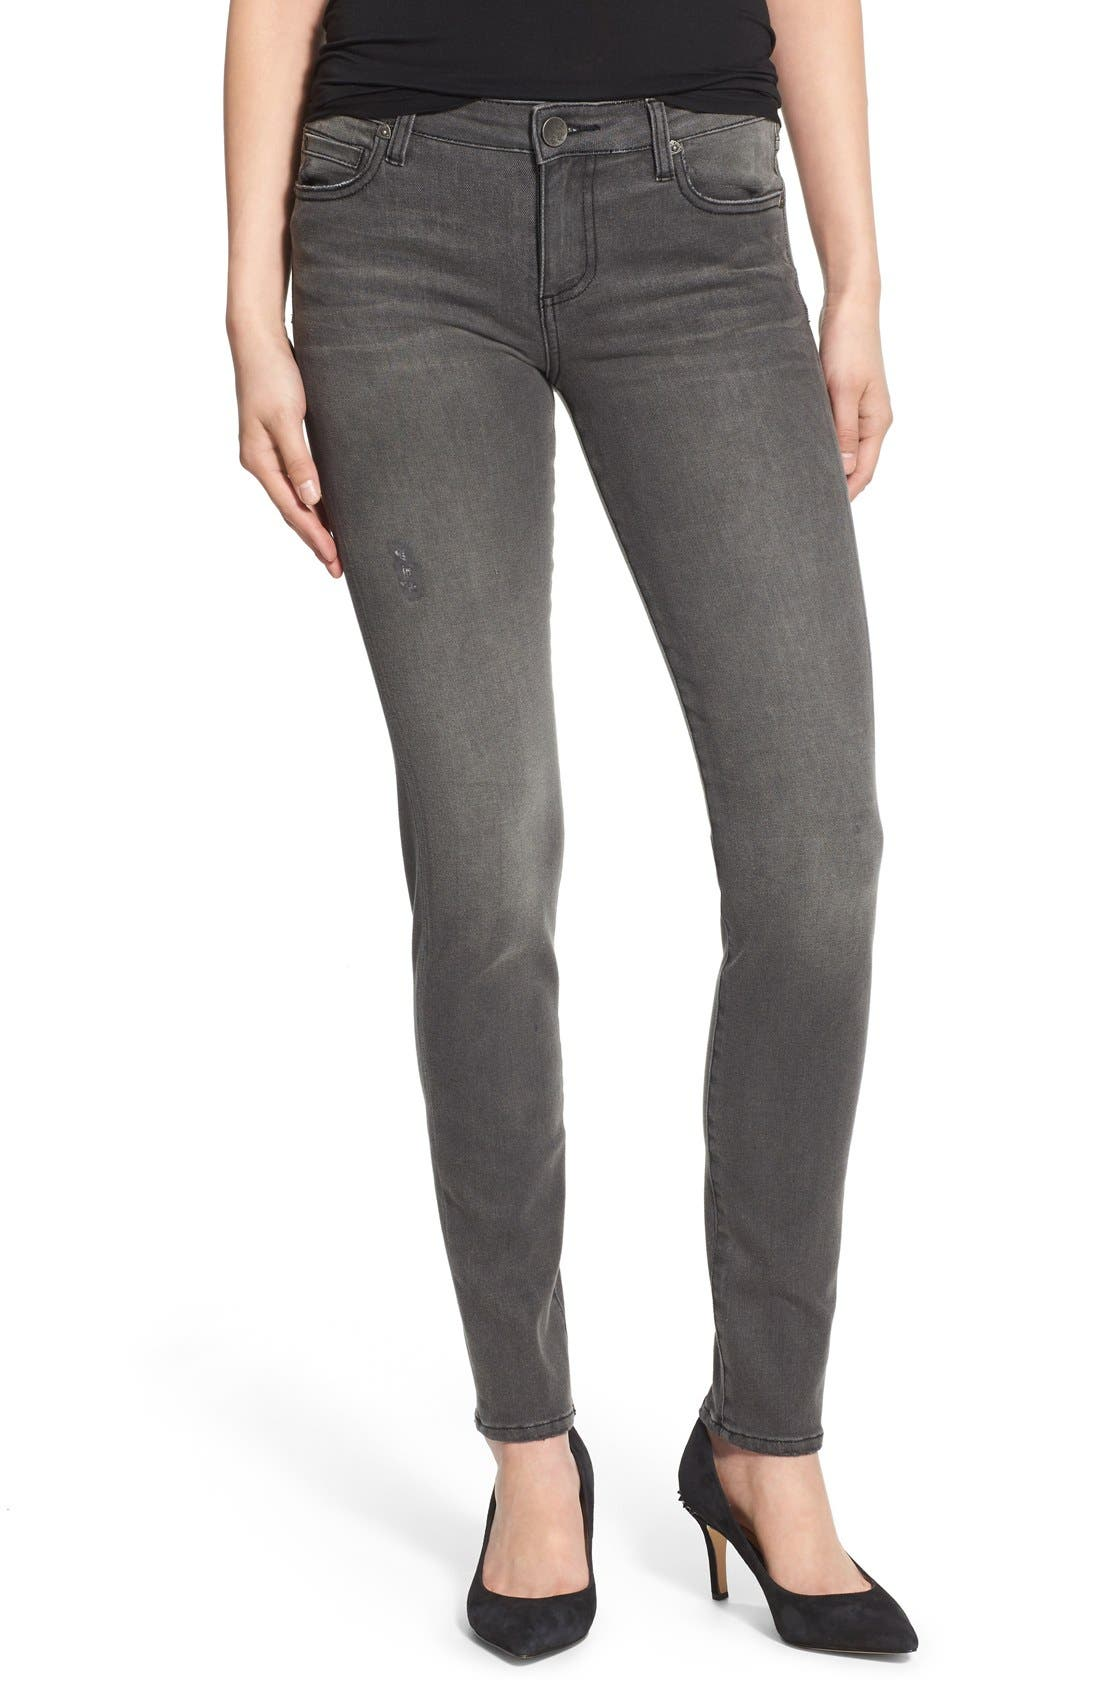 Alternate Image 1 Selected - KUT from the Kloth 'Diana' Stretch Skinny Jeans (Continuity) (Regular & Petite)